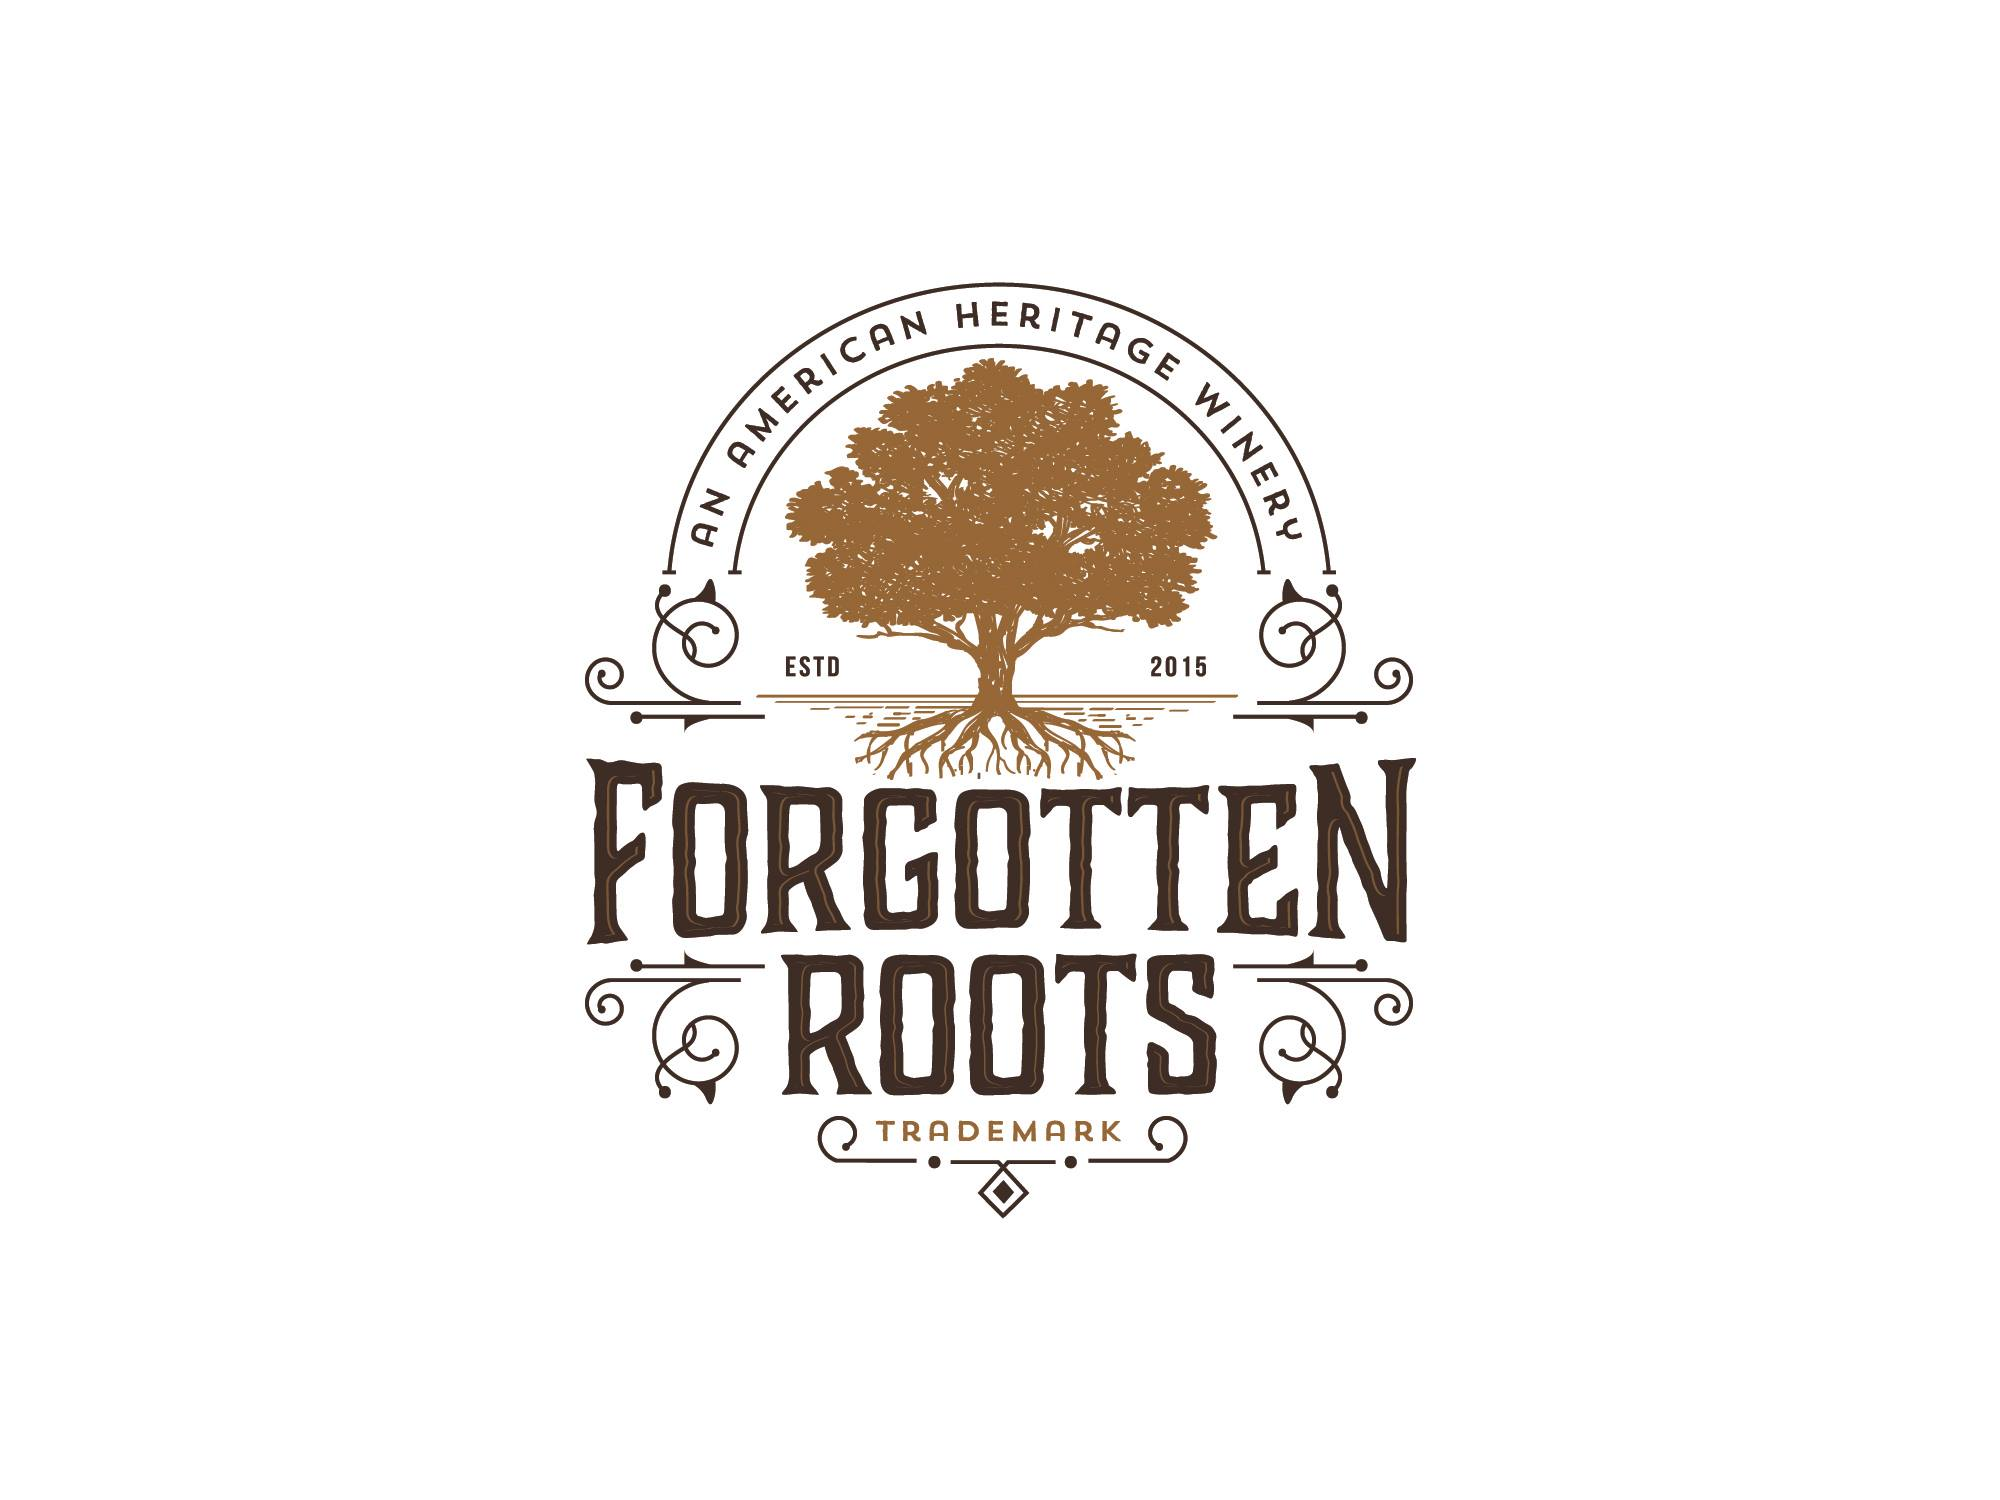 Forgotten Roots: an American Heritage Winery